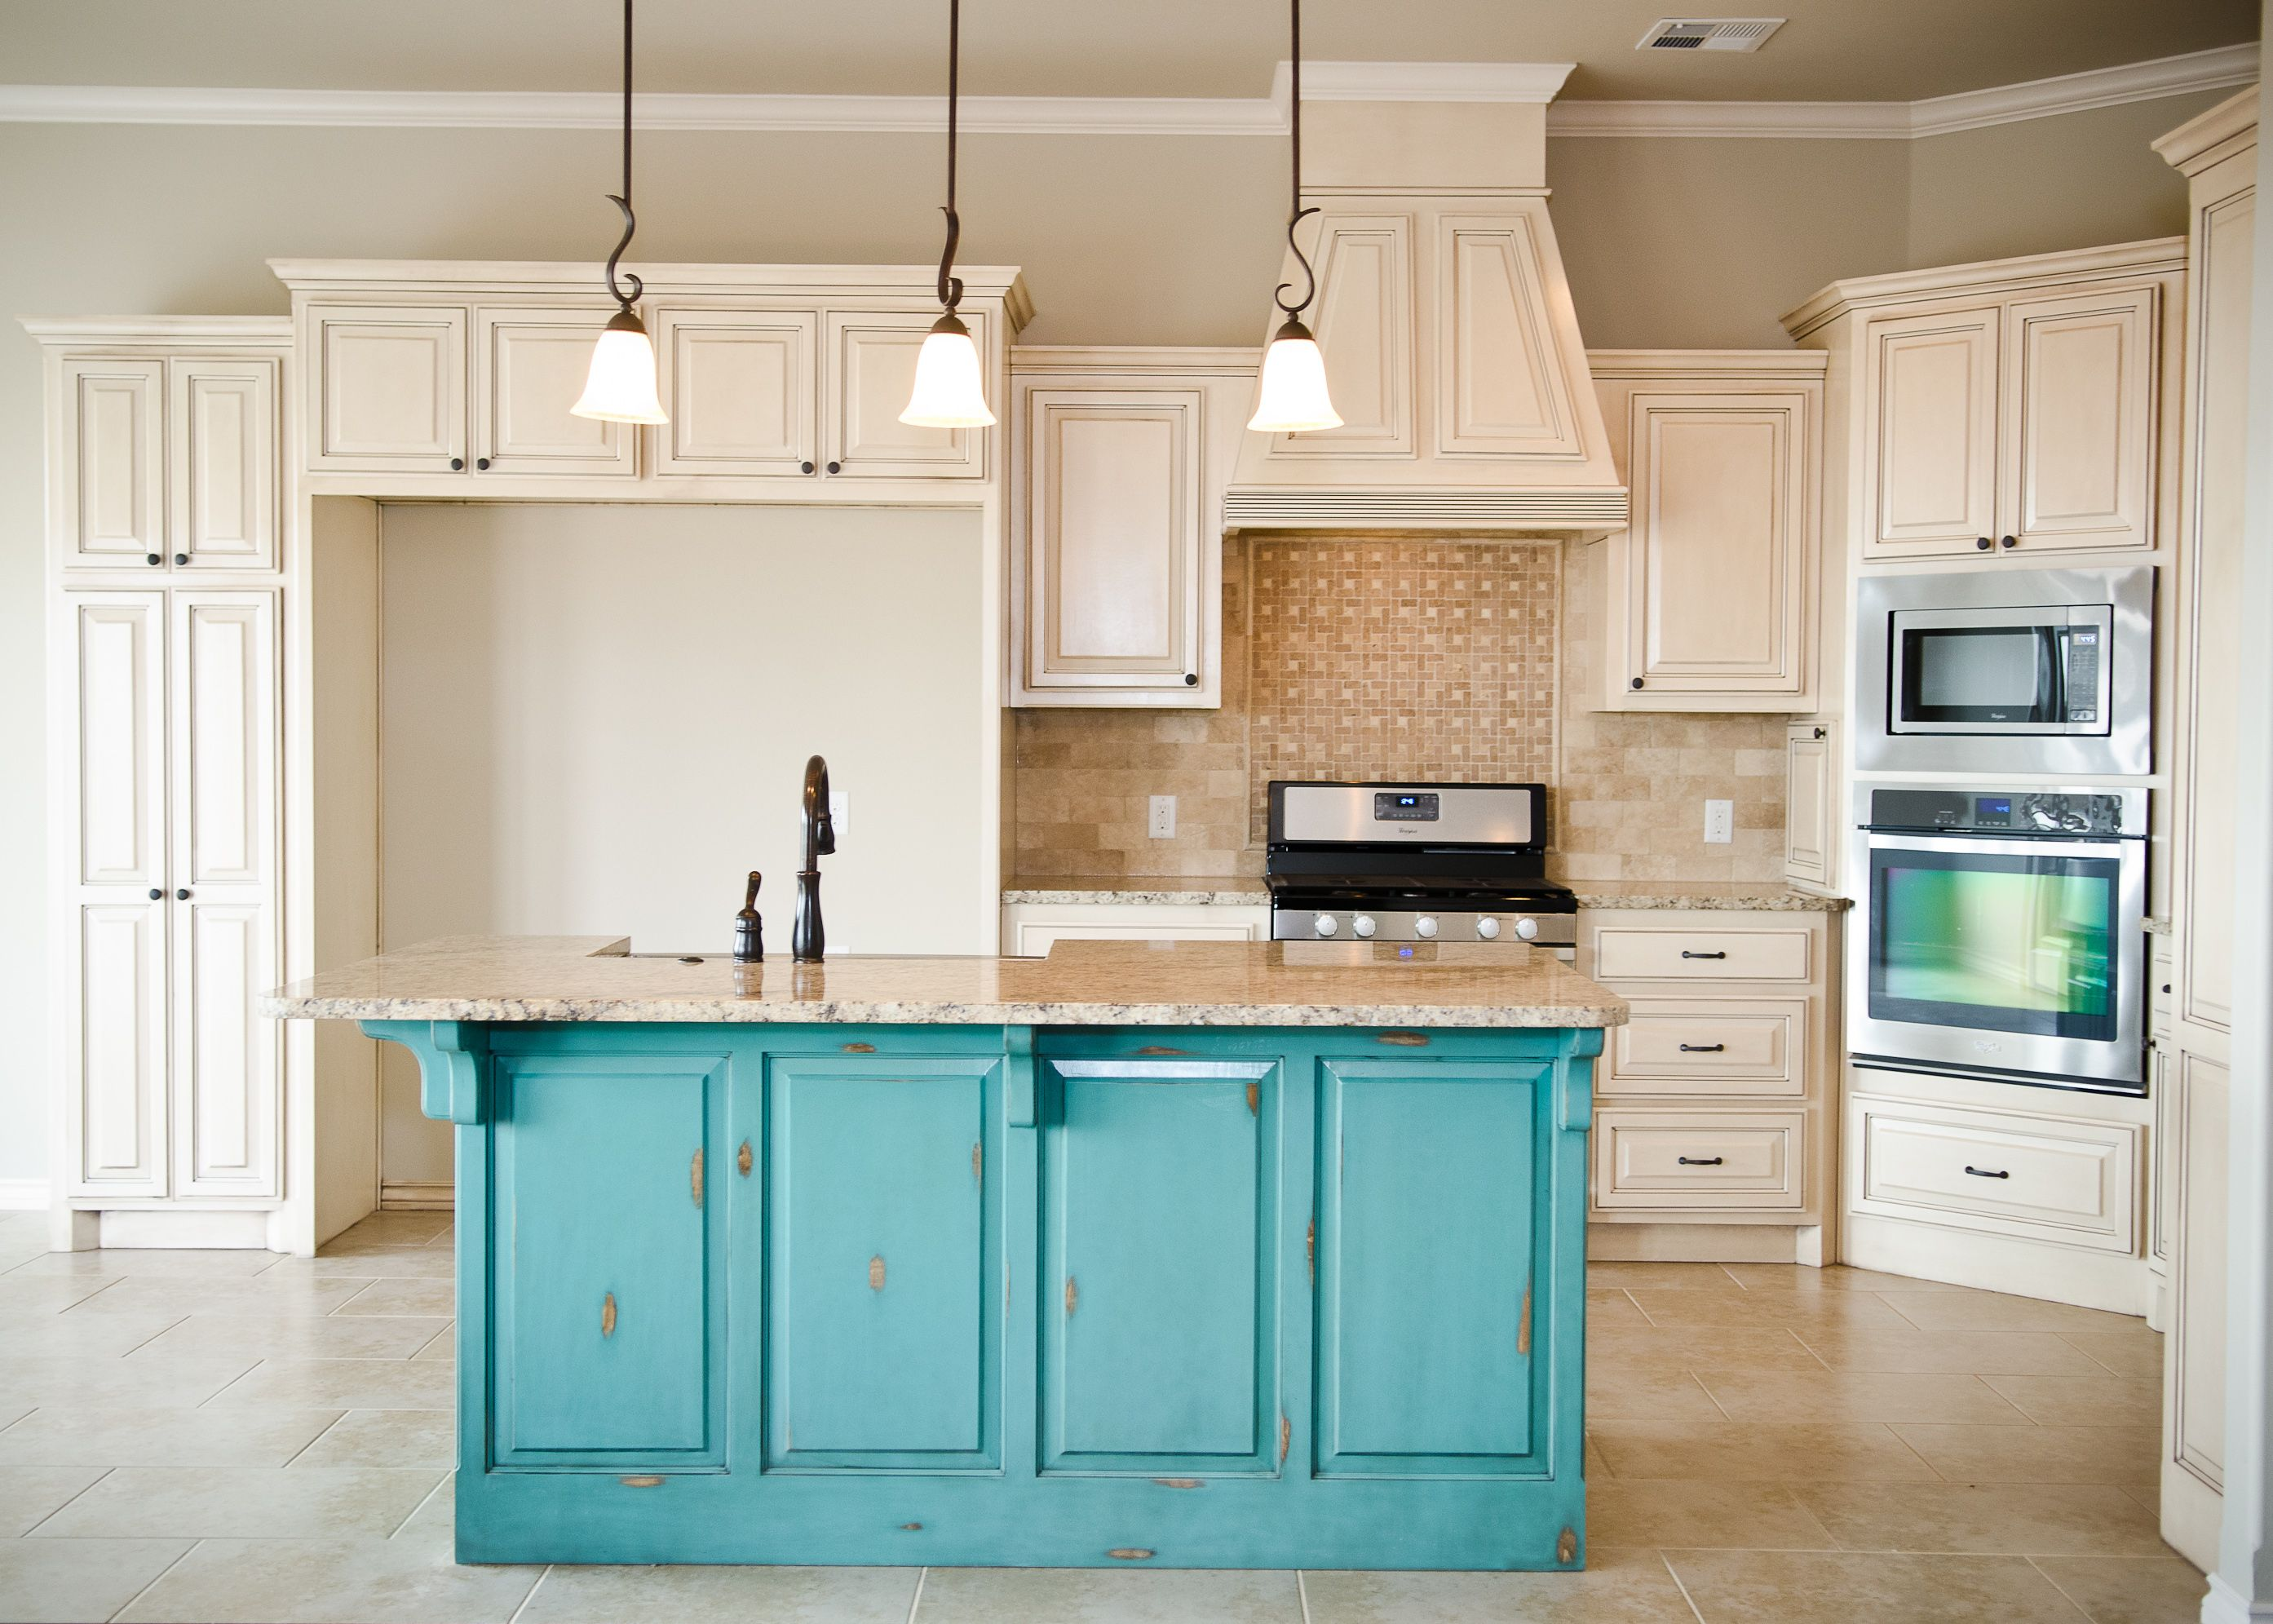 Distressed Turquoise Island With Cream Glazed Cabinets Stone